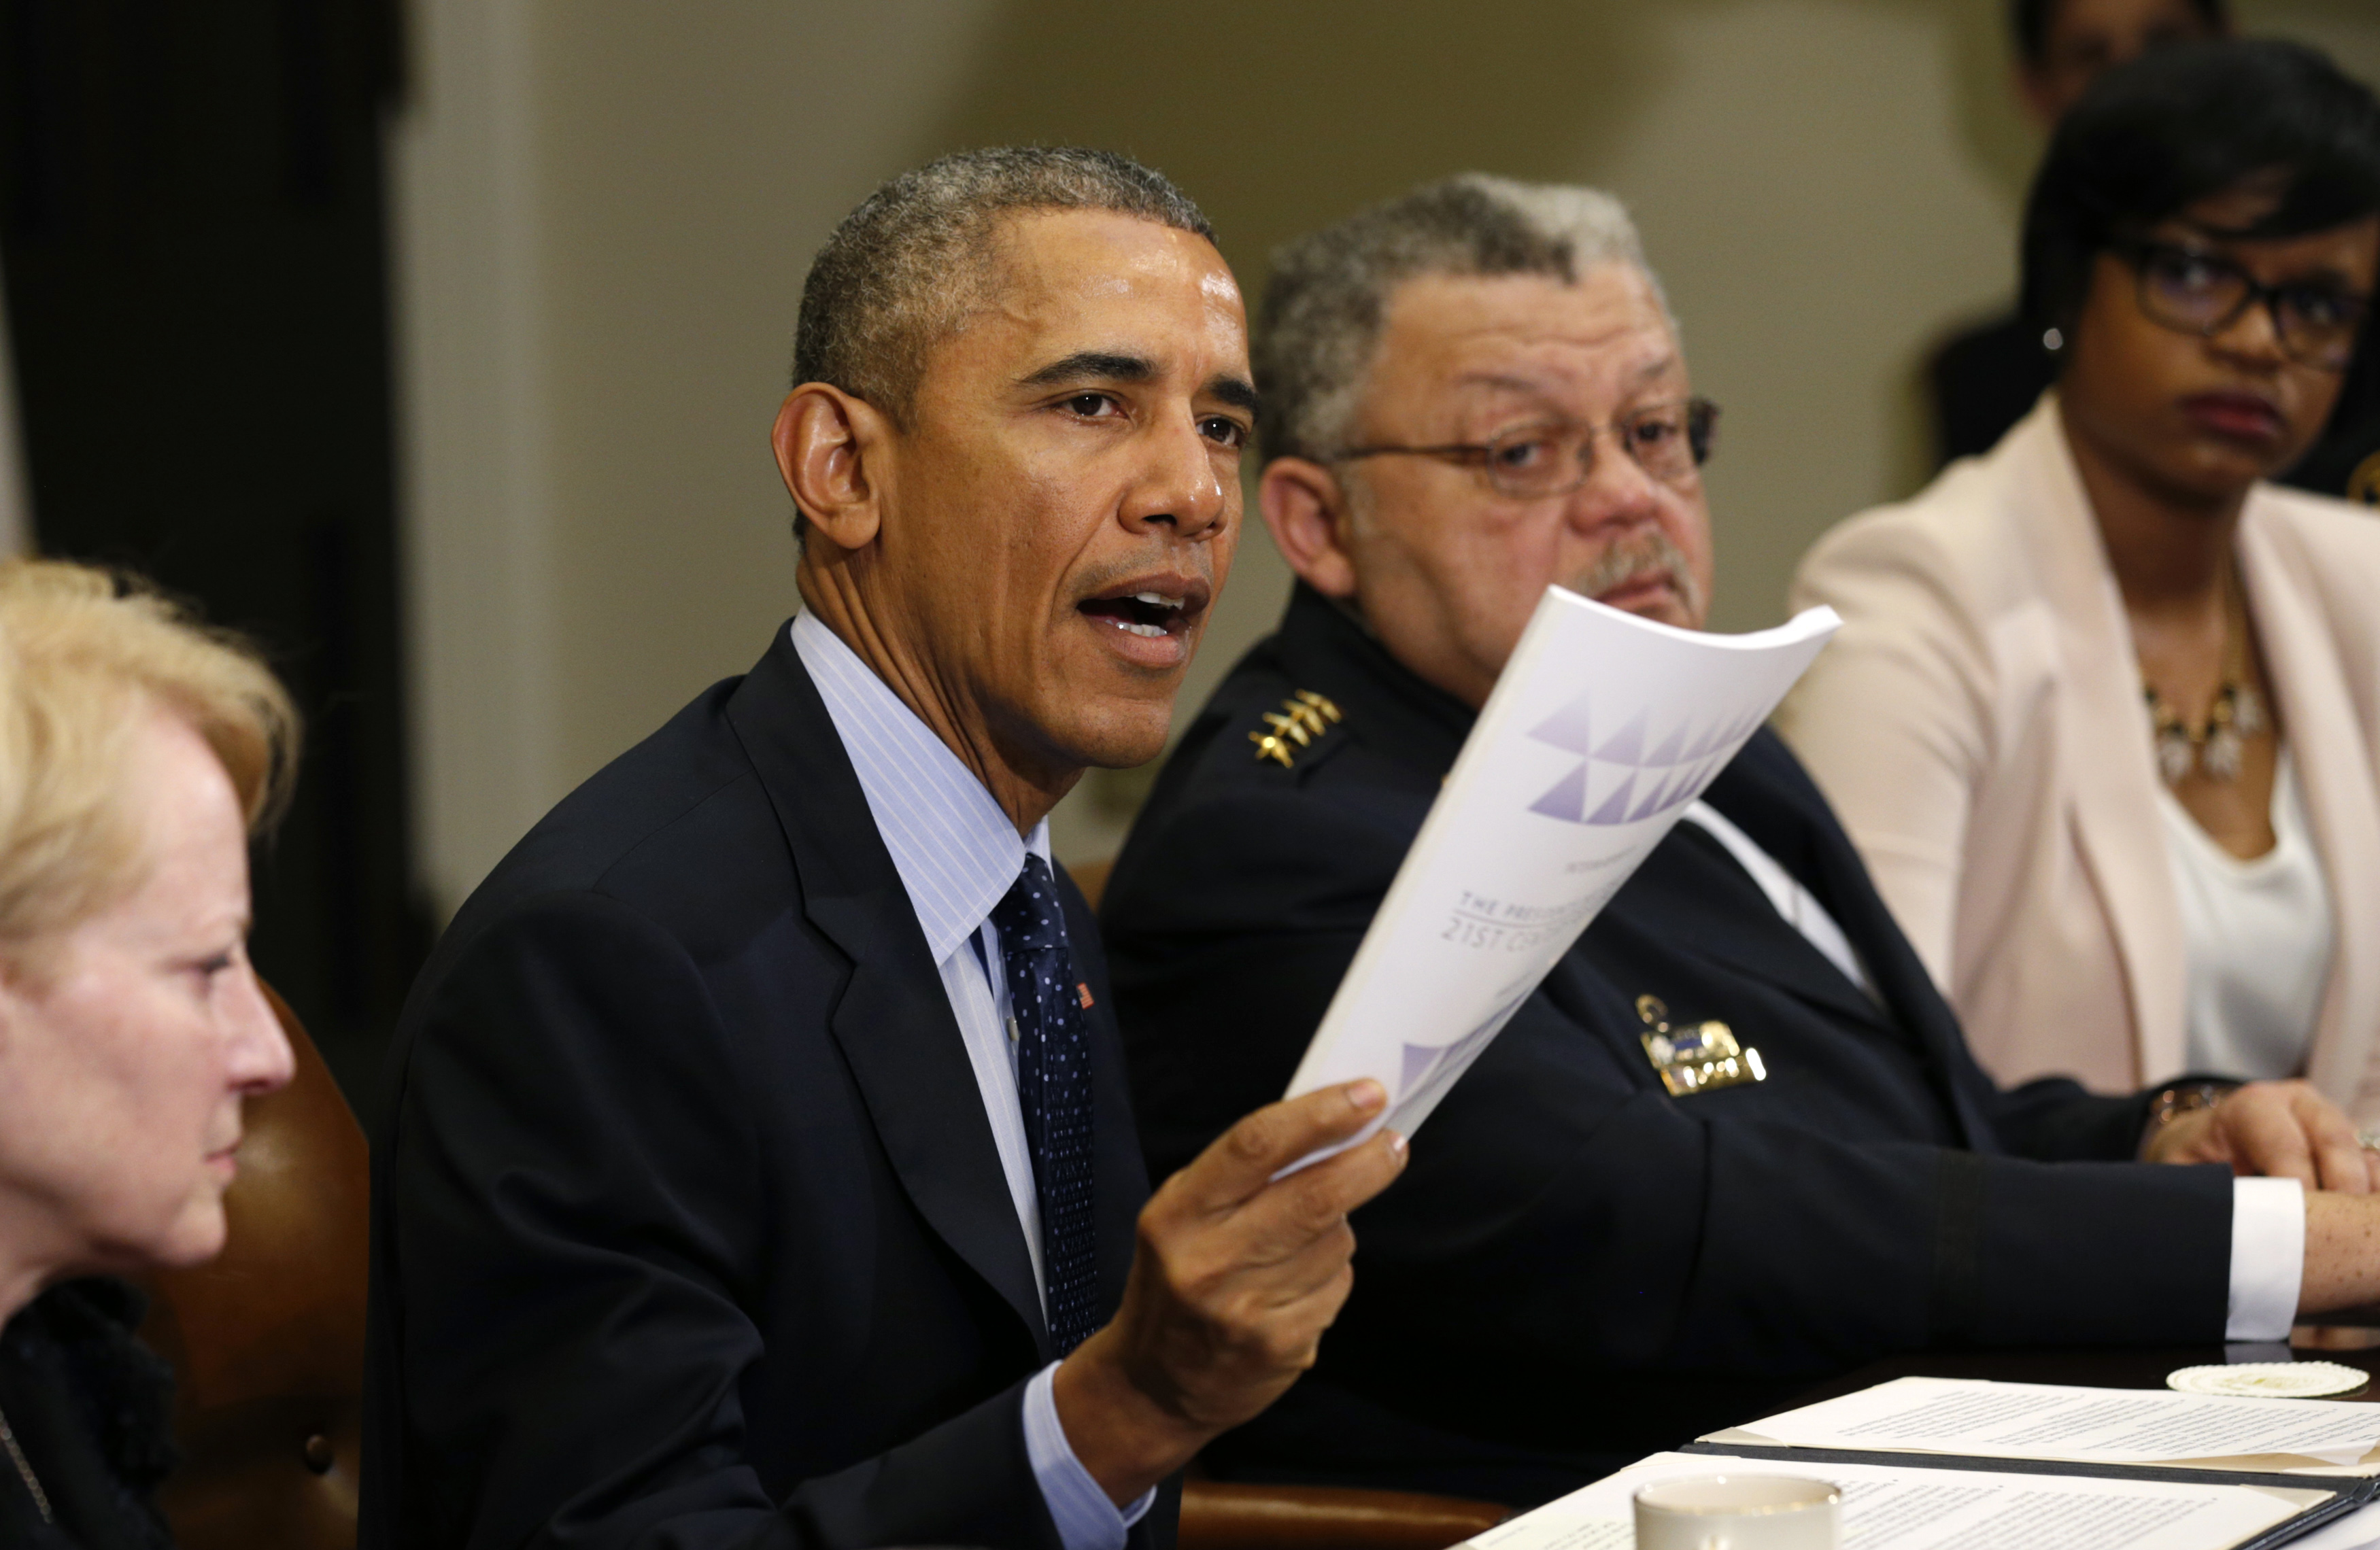 President Barack Obama holds up a copy of the report by the Task Force on 21st Century Policing at the White House in Washington, March 2, 2015.